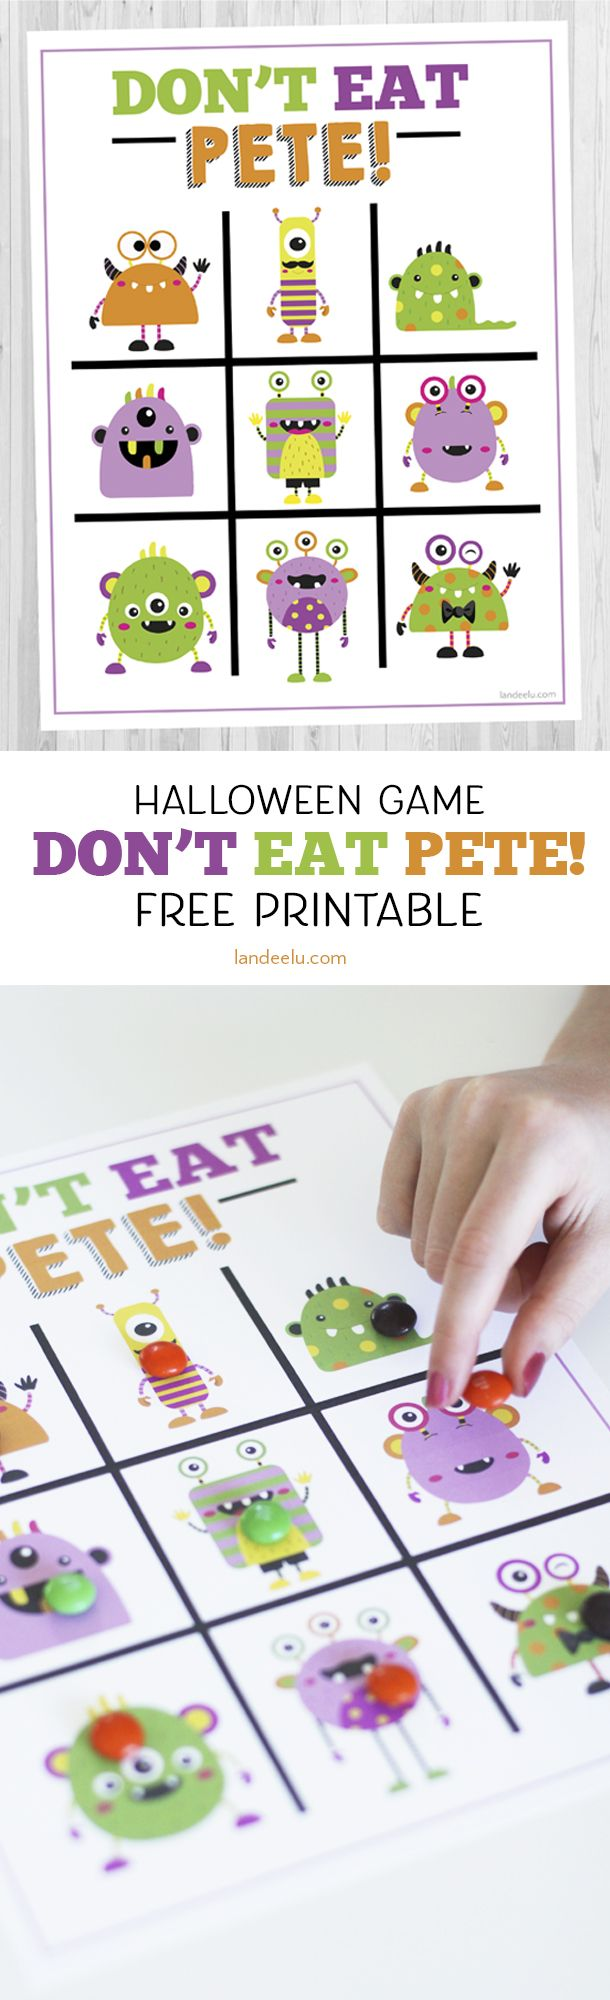 Are you looking for a fun Halloween game for kids? This cute monster version of Don't Eat Pete! will be a hit at your Halloween party this year!